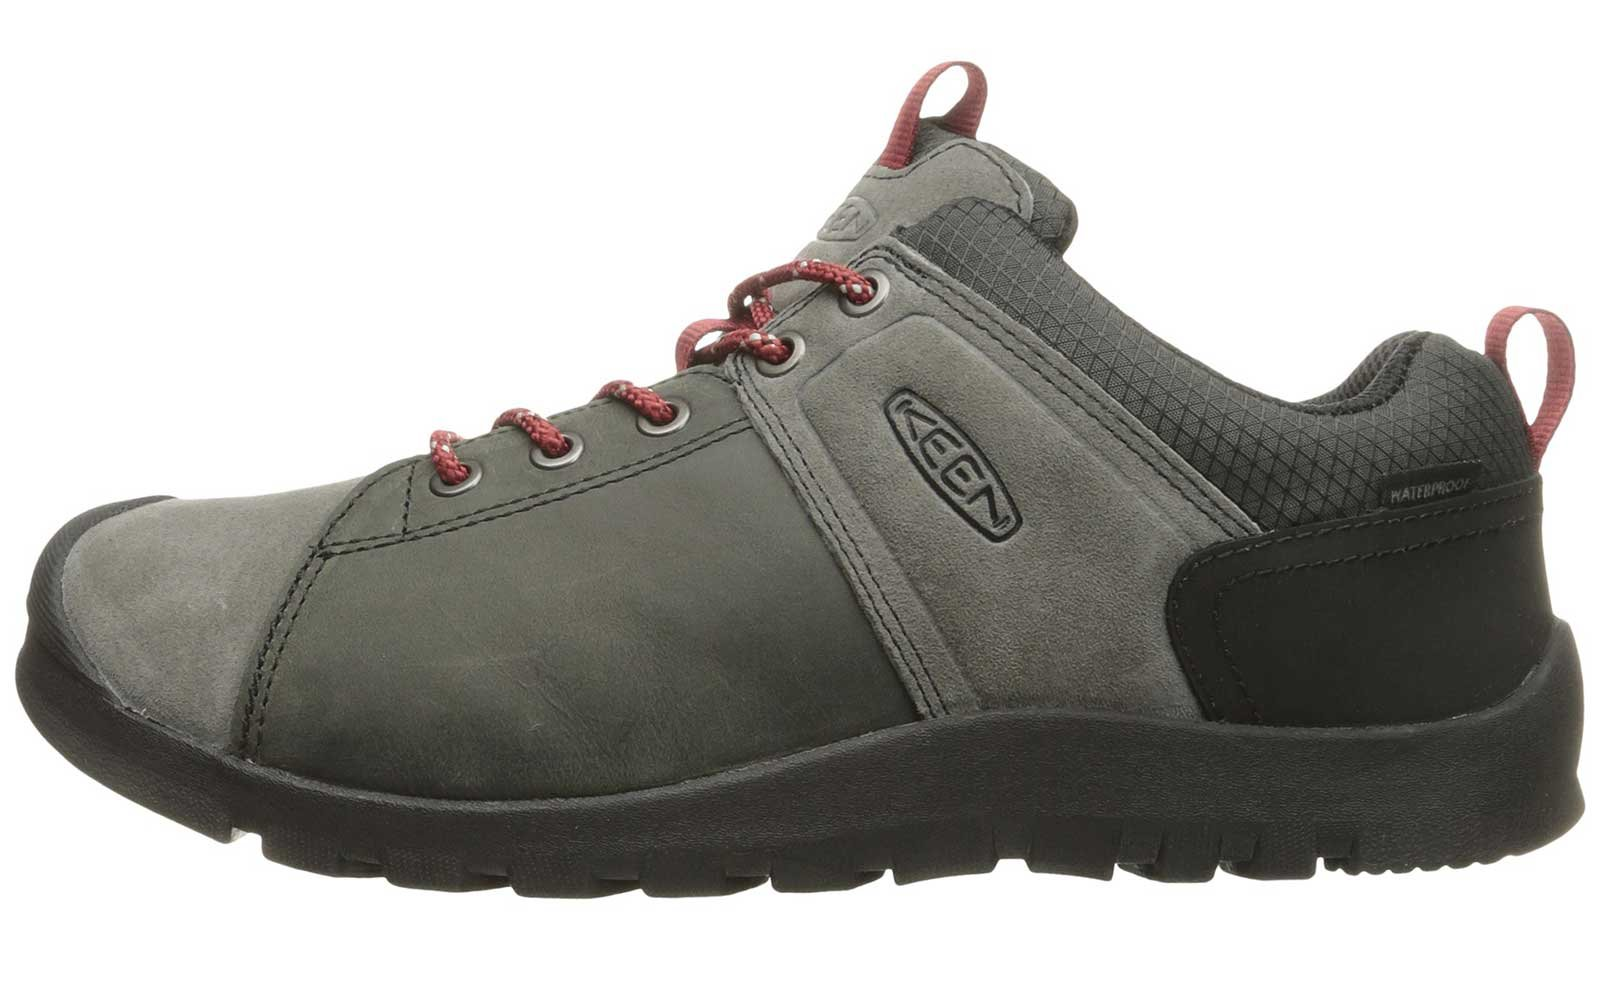 Men's Outdoor walking Shoes